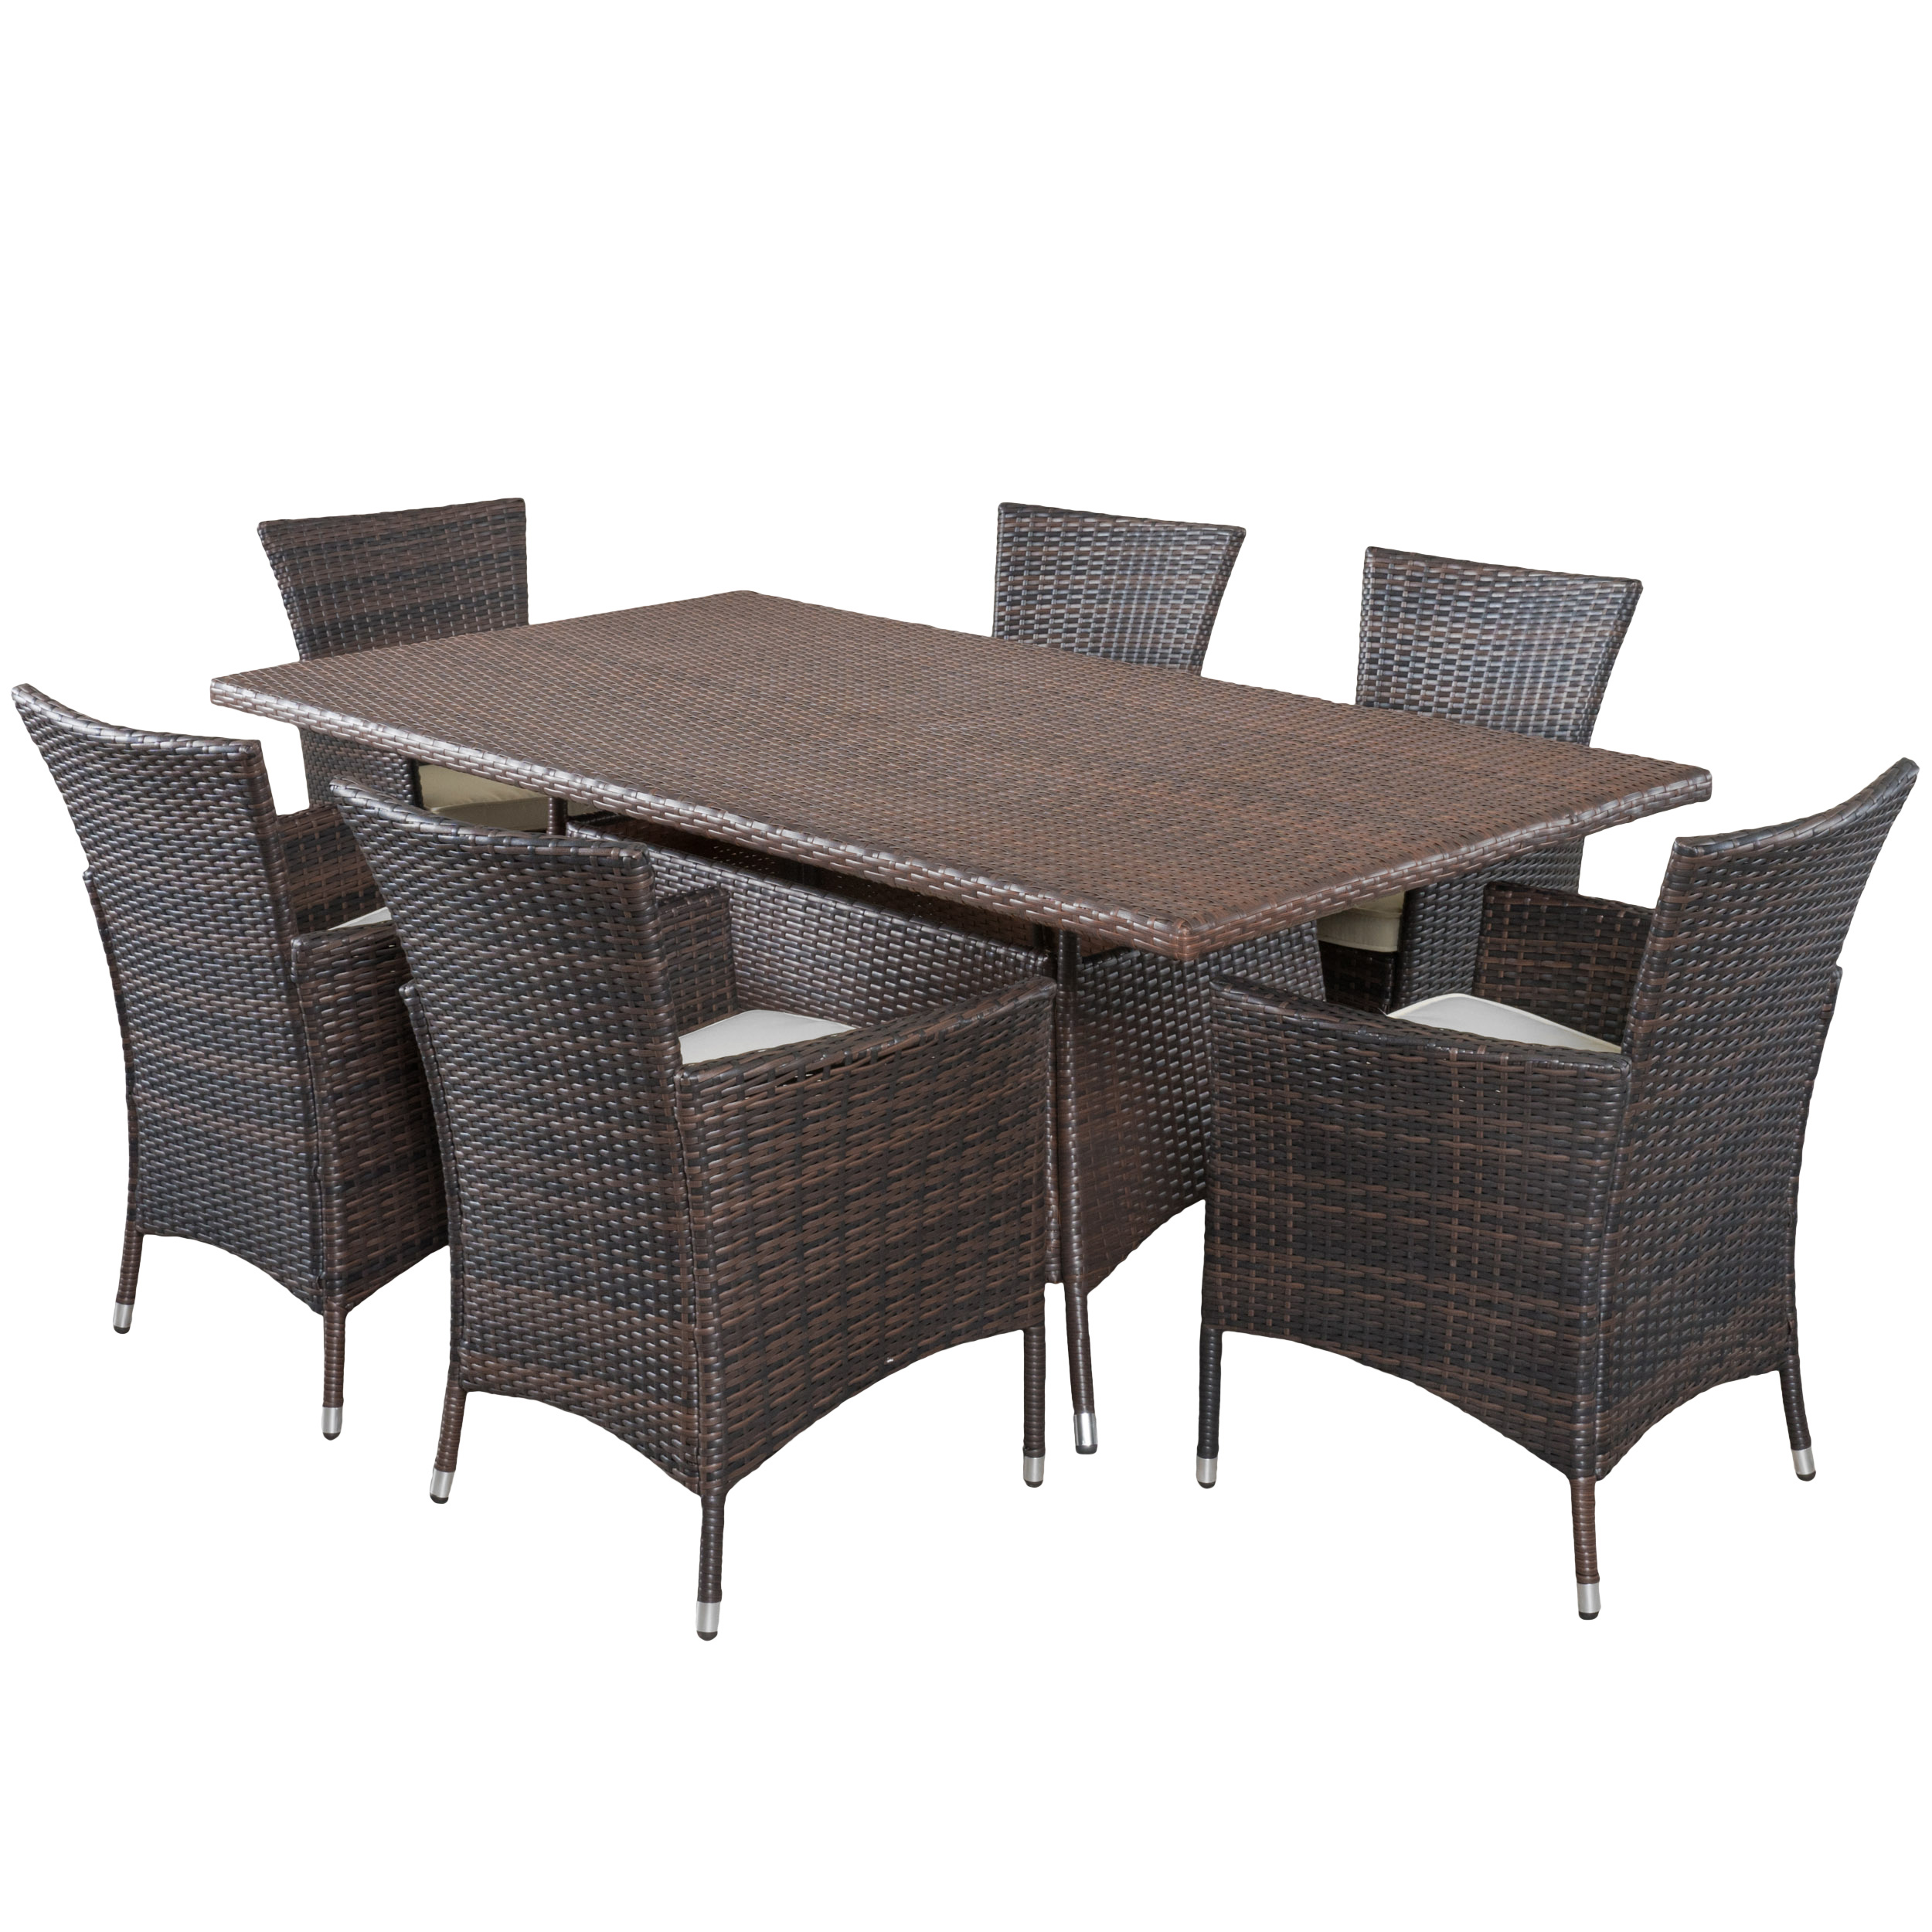 Caden Outdoor Wicker Dining Room Set by GDF Studio